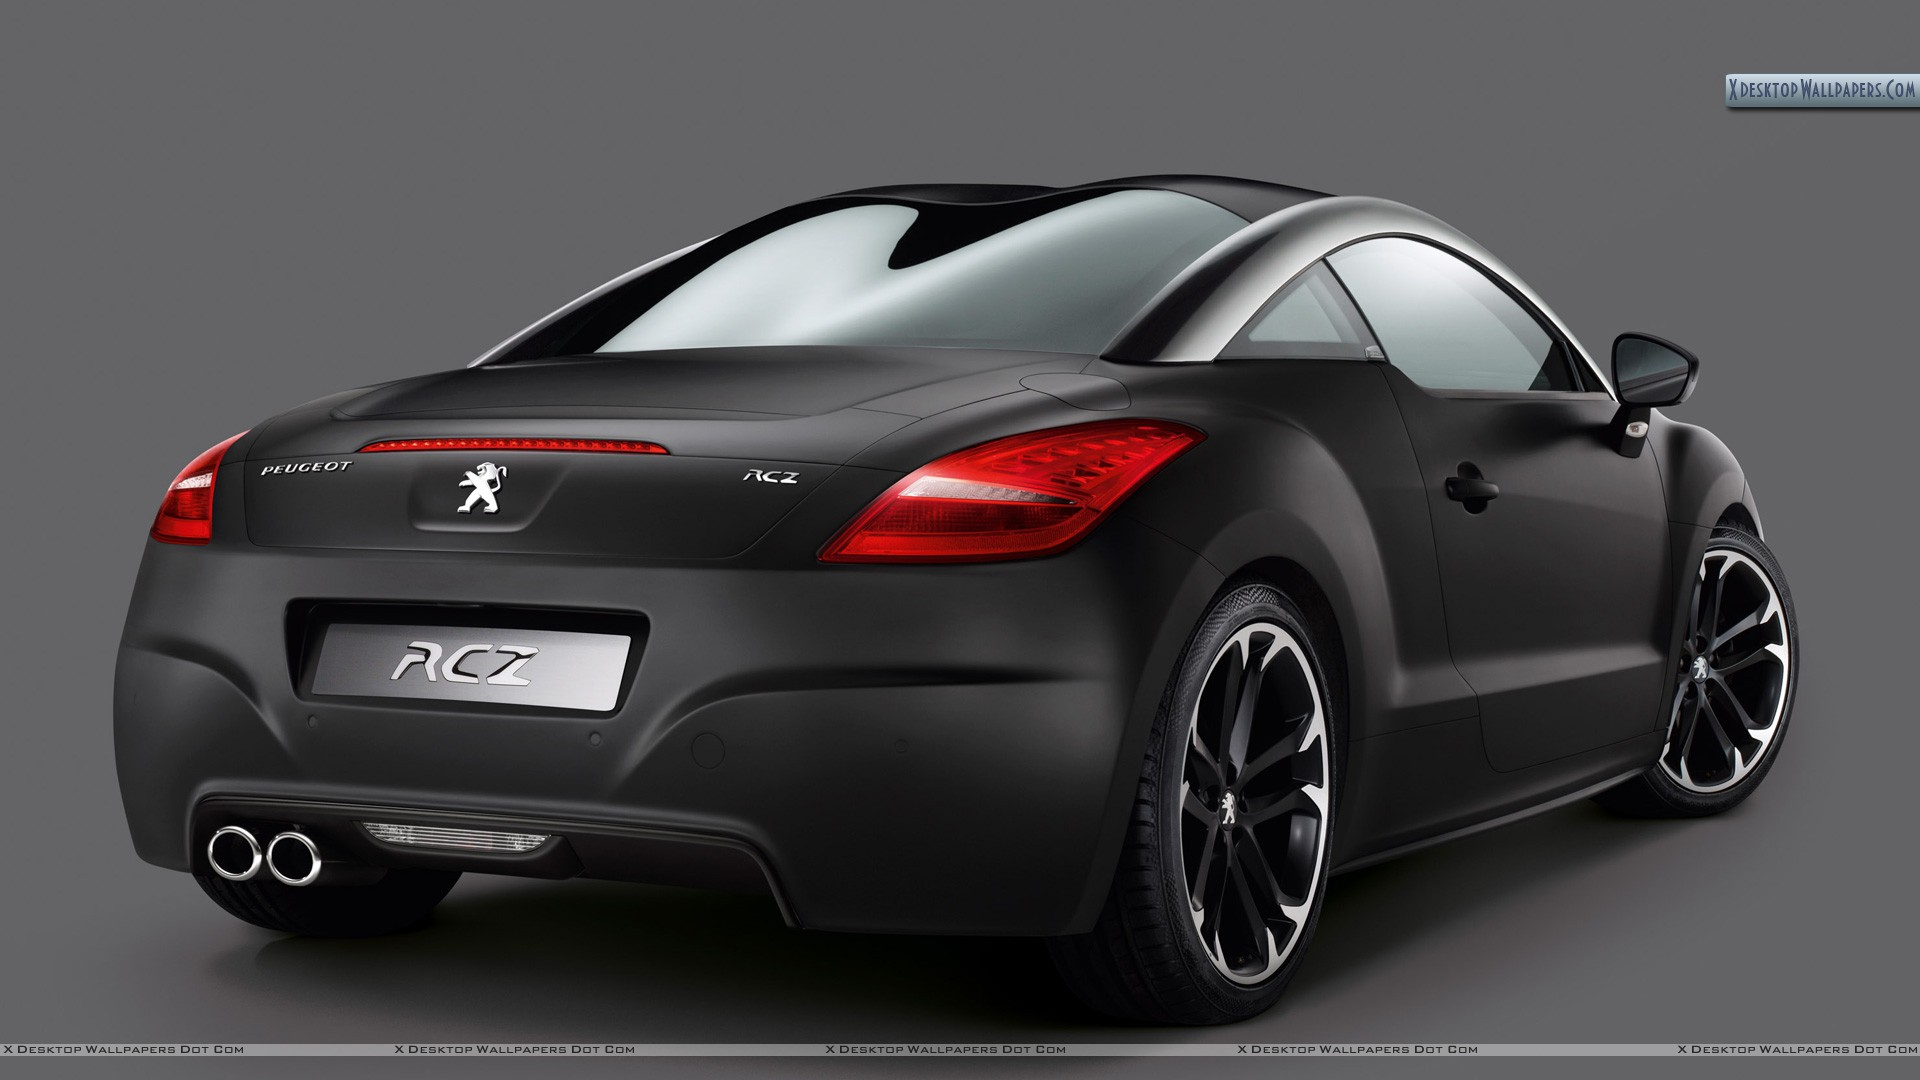 2010 peugeot rcz asphalt back pose in black color wallpaper. Black Bedroom Furniture Sets. Home Design Ideas